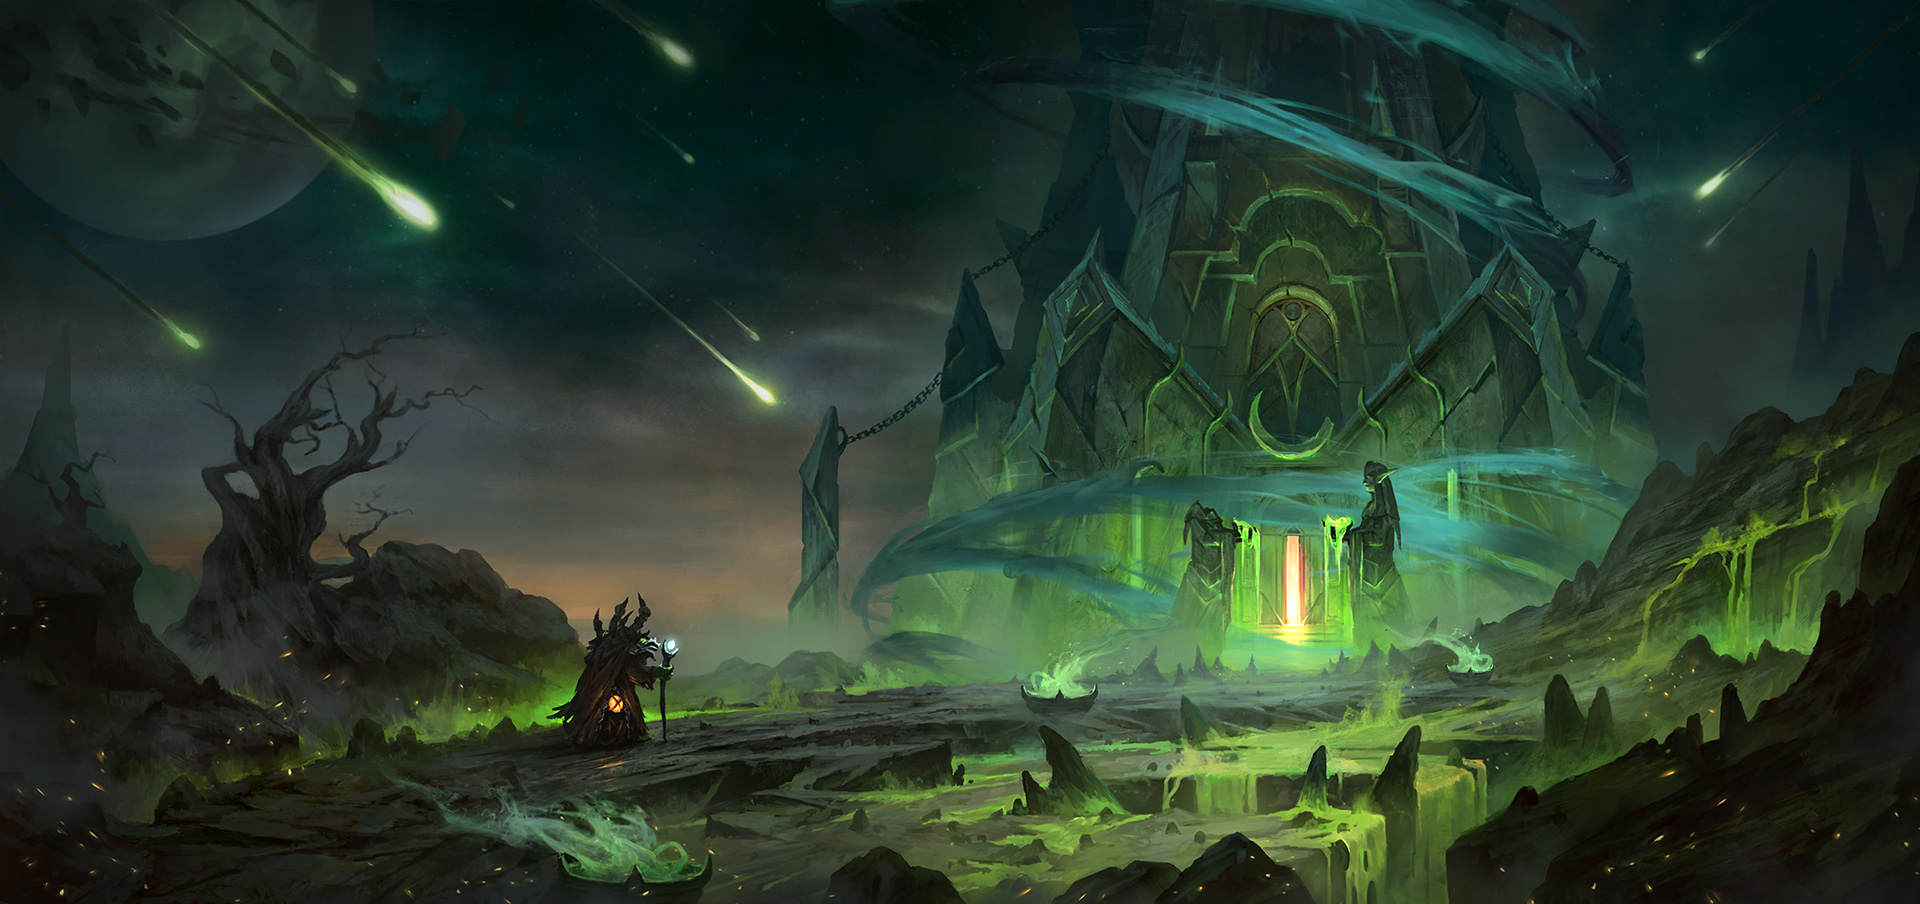 http://wowimg.zamimg.com/images/contest/legion/art/tomb_of_sargeras_03.jpg